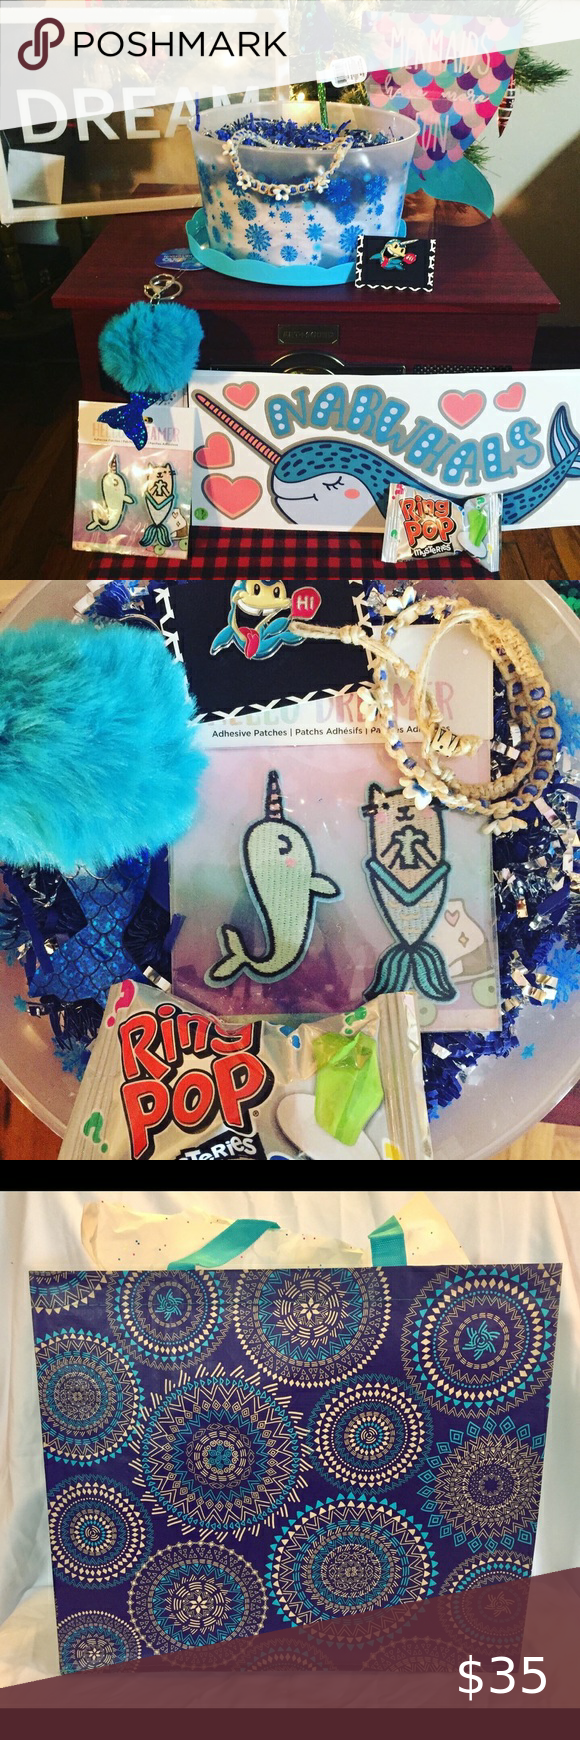 """Narwhals & Mermaids Gift Set Includes:  """"Mermaids Have More Fun"""" Fishtail Sign, Sequined Mermaid Tail Pen, Hemp Flower Choker, Ring Pop, Set of Narwhal/ Purrmaid Patches, Puff/Pom Mermaid Tail Keychain, Narwhal Enamel Pin, """"Dream"""" Decor and """"I Love You More Than All The Narwhals In The Sea"""" Sticker Decor Set.  This 9 Item set is ready for gifting in a reusable Tote Bag!    #narwhals #mermaids #believe #valentine #sealife #dream #hemp #magical #candy #giftset #tacosclosets  #shoplocal #locallyown"""